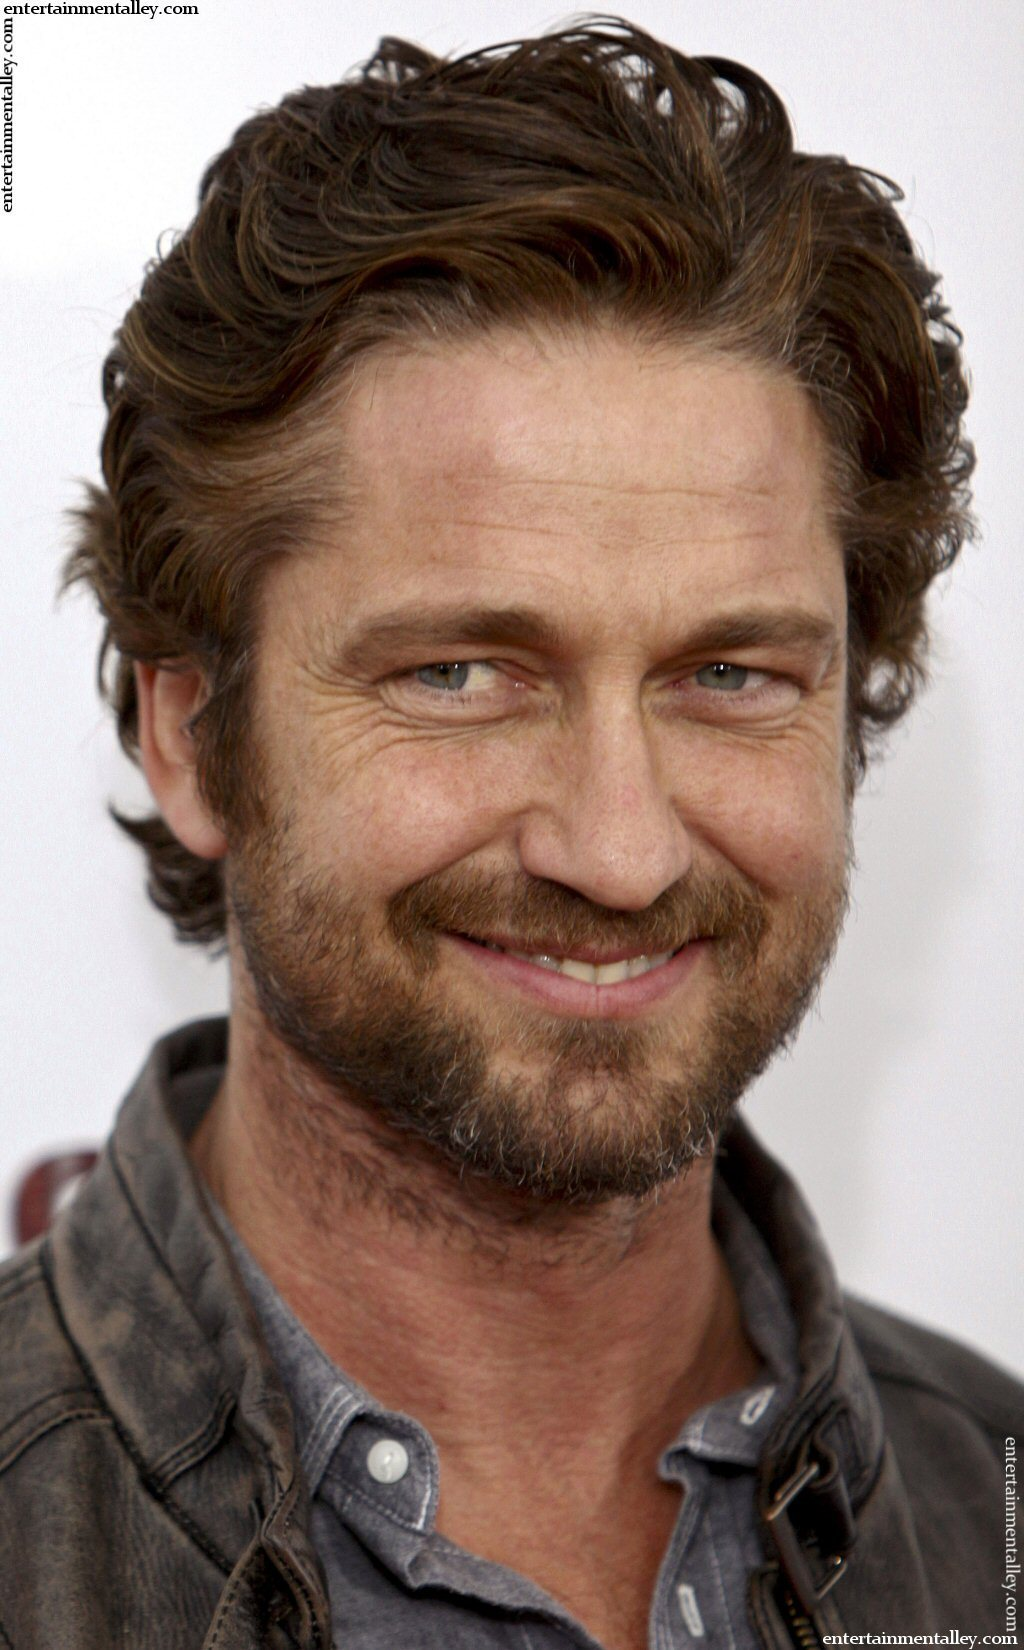 Gerard Butler images Gerard Butler HD wallpaper and background photos ...